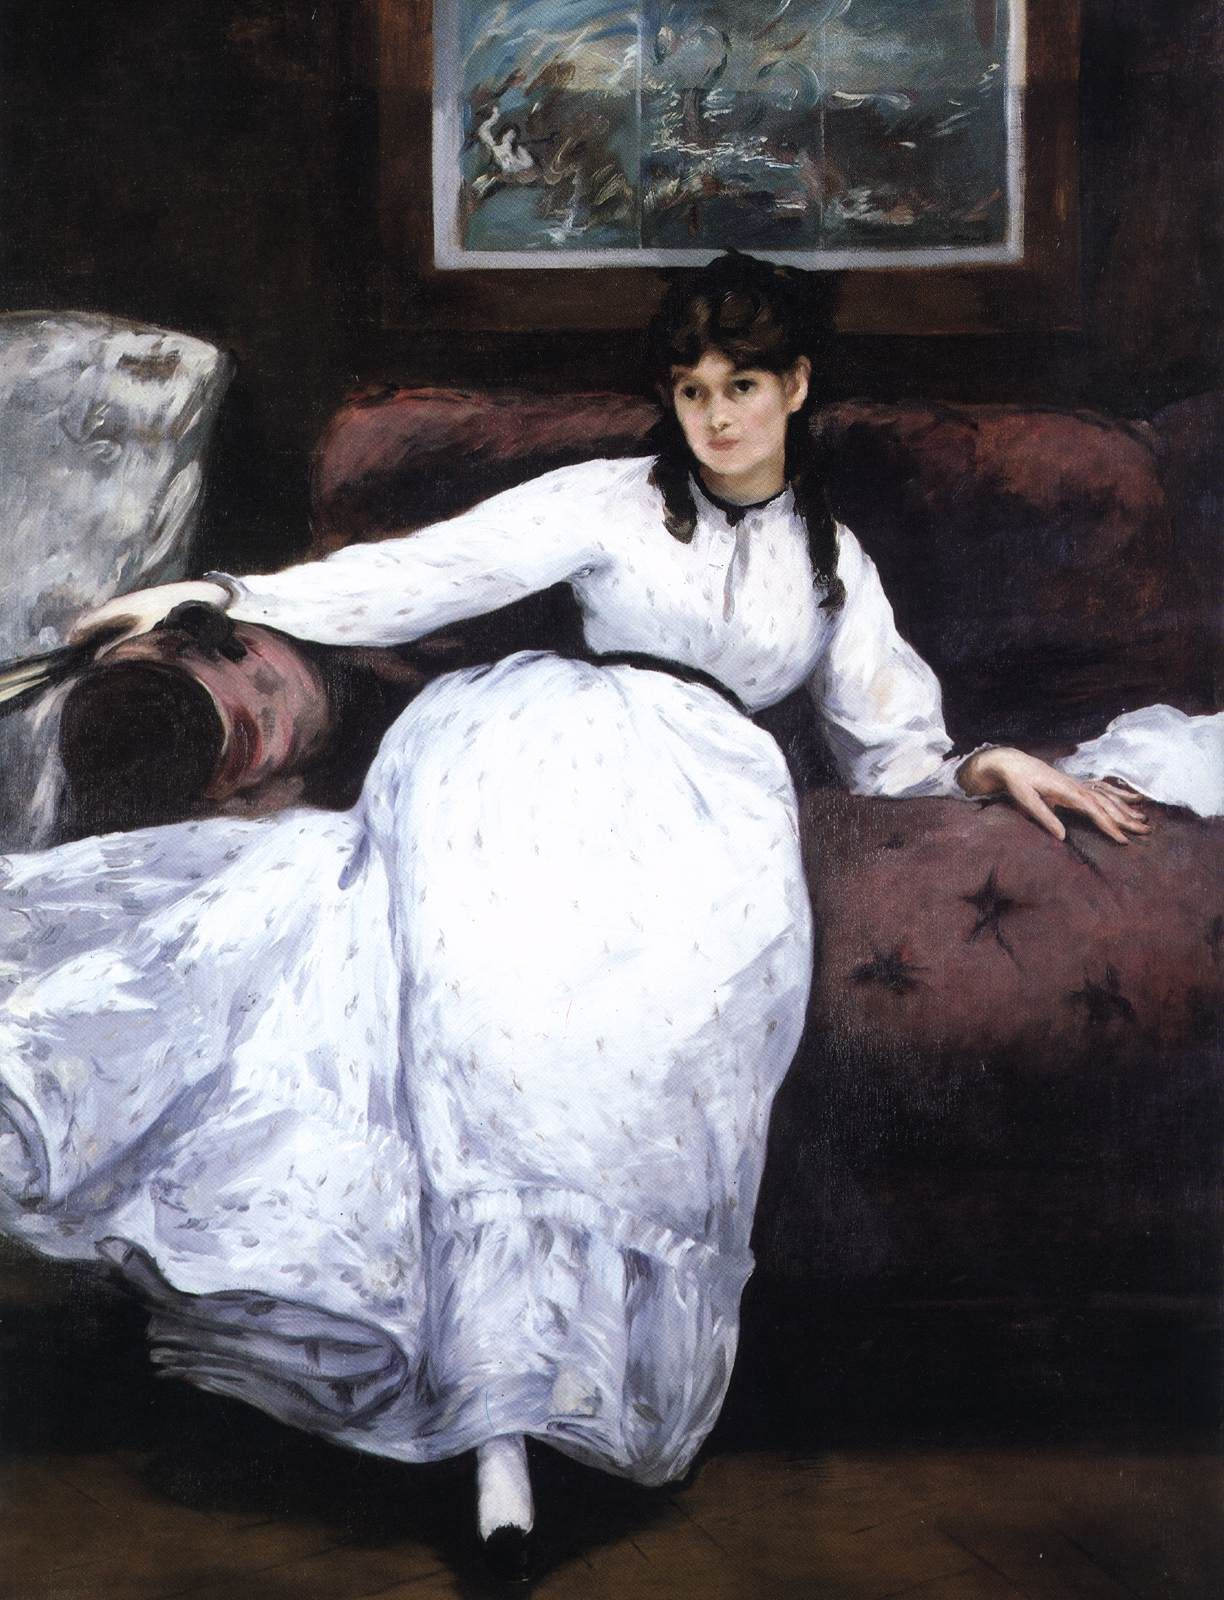 MANET, Edouard Repose - Portrait of Berthe Morisot 1870 Oil on canvas, 148  x 113 cm Museum of Art, Rhode Island School of Design, Providence